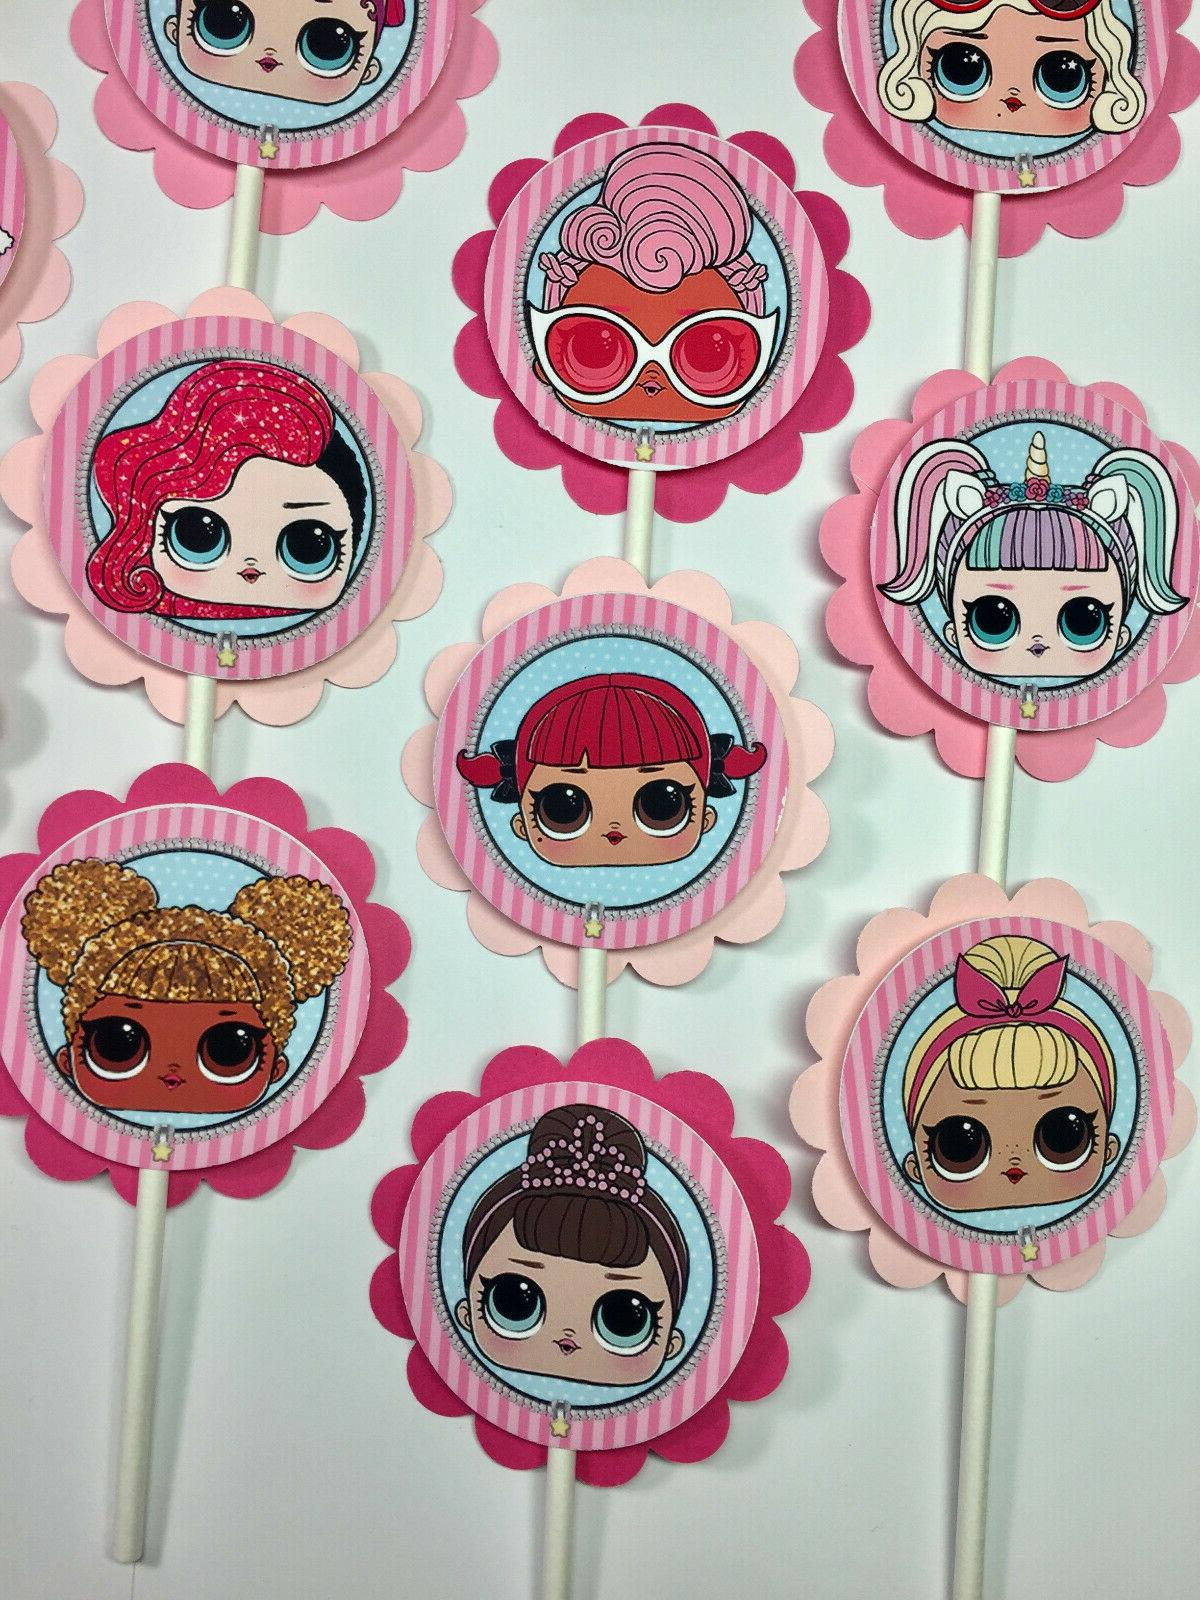 30 LOL Dolls Dimensional Party Cupcake to Ship*